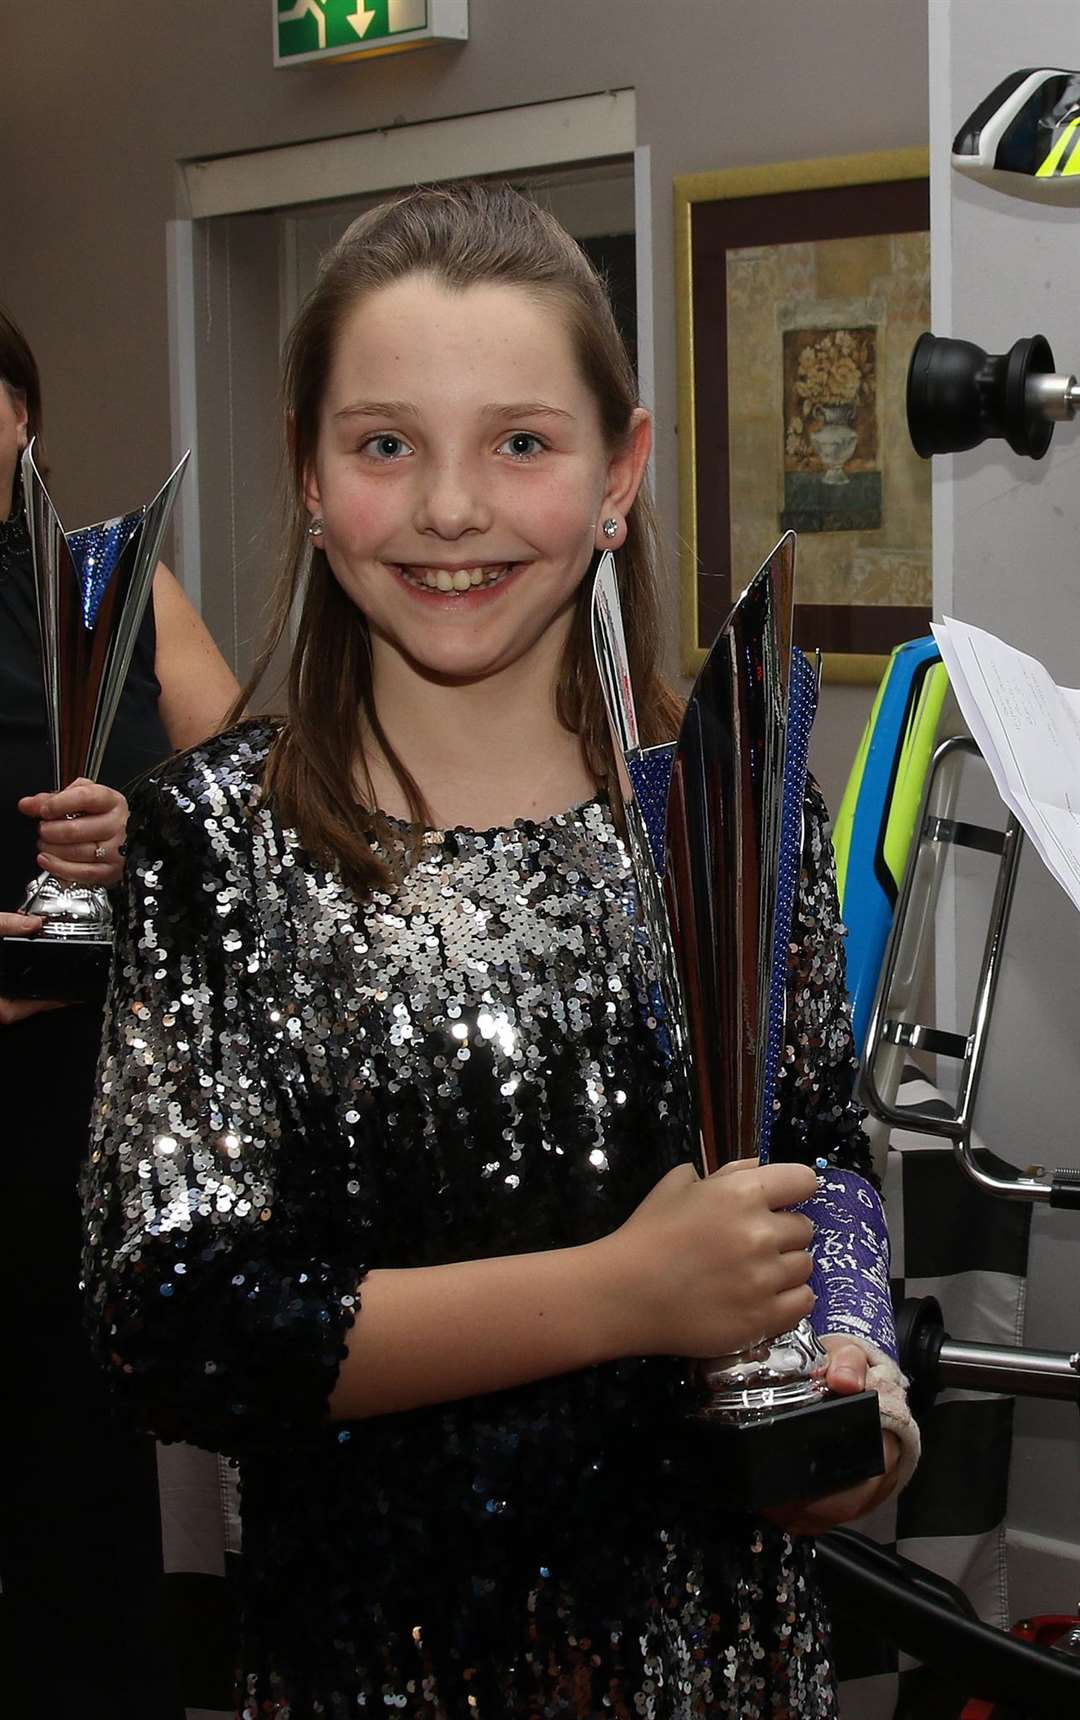 Andrina - Most Improved Cadet at karting club (7269654)